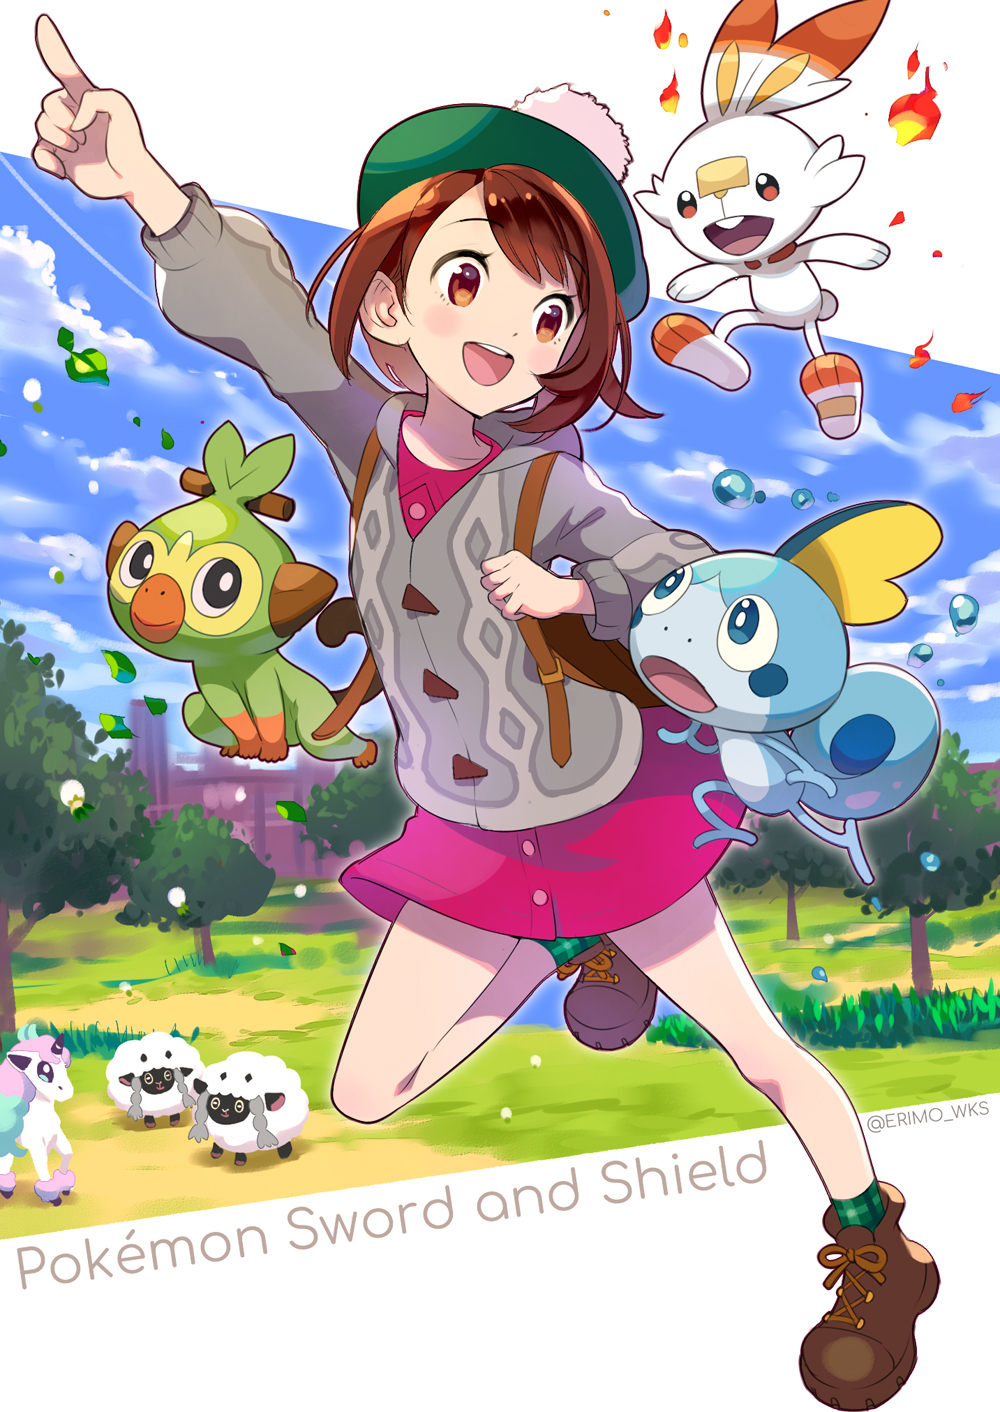 1girl :d arm_up backpack bag bangs blue_sky blush boots brown_eyes brown_footwear brown_hair building cardigan clouds cloudy_sky collared_dress commentary_request copyright_name day dress eyebrows_visible_through_hair female_protagonist_(pokemon_swsh) fire galarian_form galarian_ponyta gen_8_pokemon green_headwear green_legwear grey_cardigan grookey highres holding_strap leaf long_sleeves nishimura_eri open_mouth outstretched_arm pink_dress plaid plaid_legwear pokemon pokemon_(game) pokemon_swsh scorbunny sheep sky smile sobble socks standing standing_on_one_leg tam_o'_shanter tree twitter_username upper_teeth water wooloo